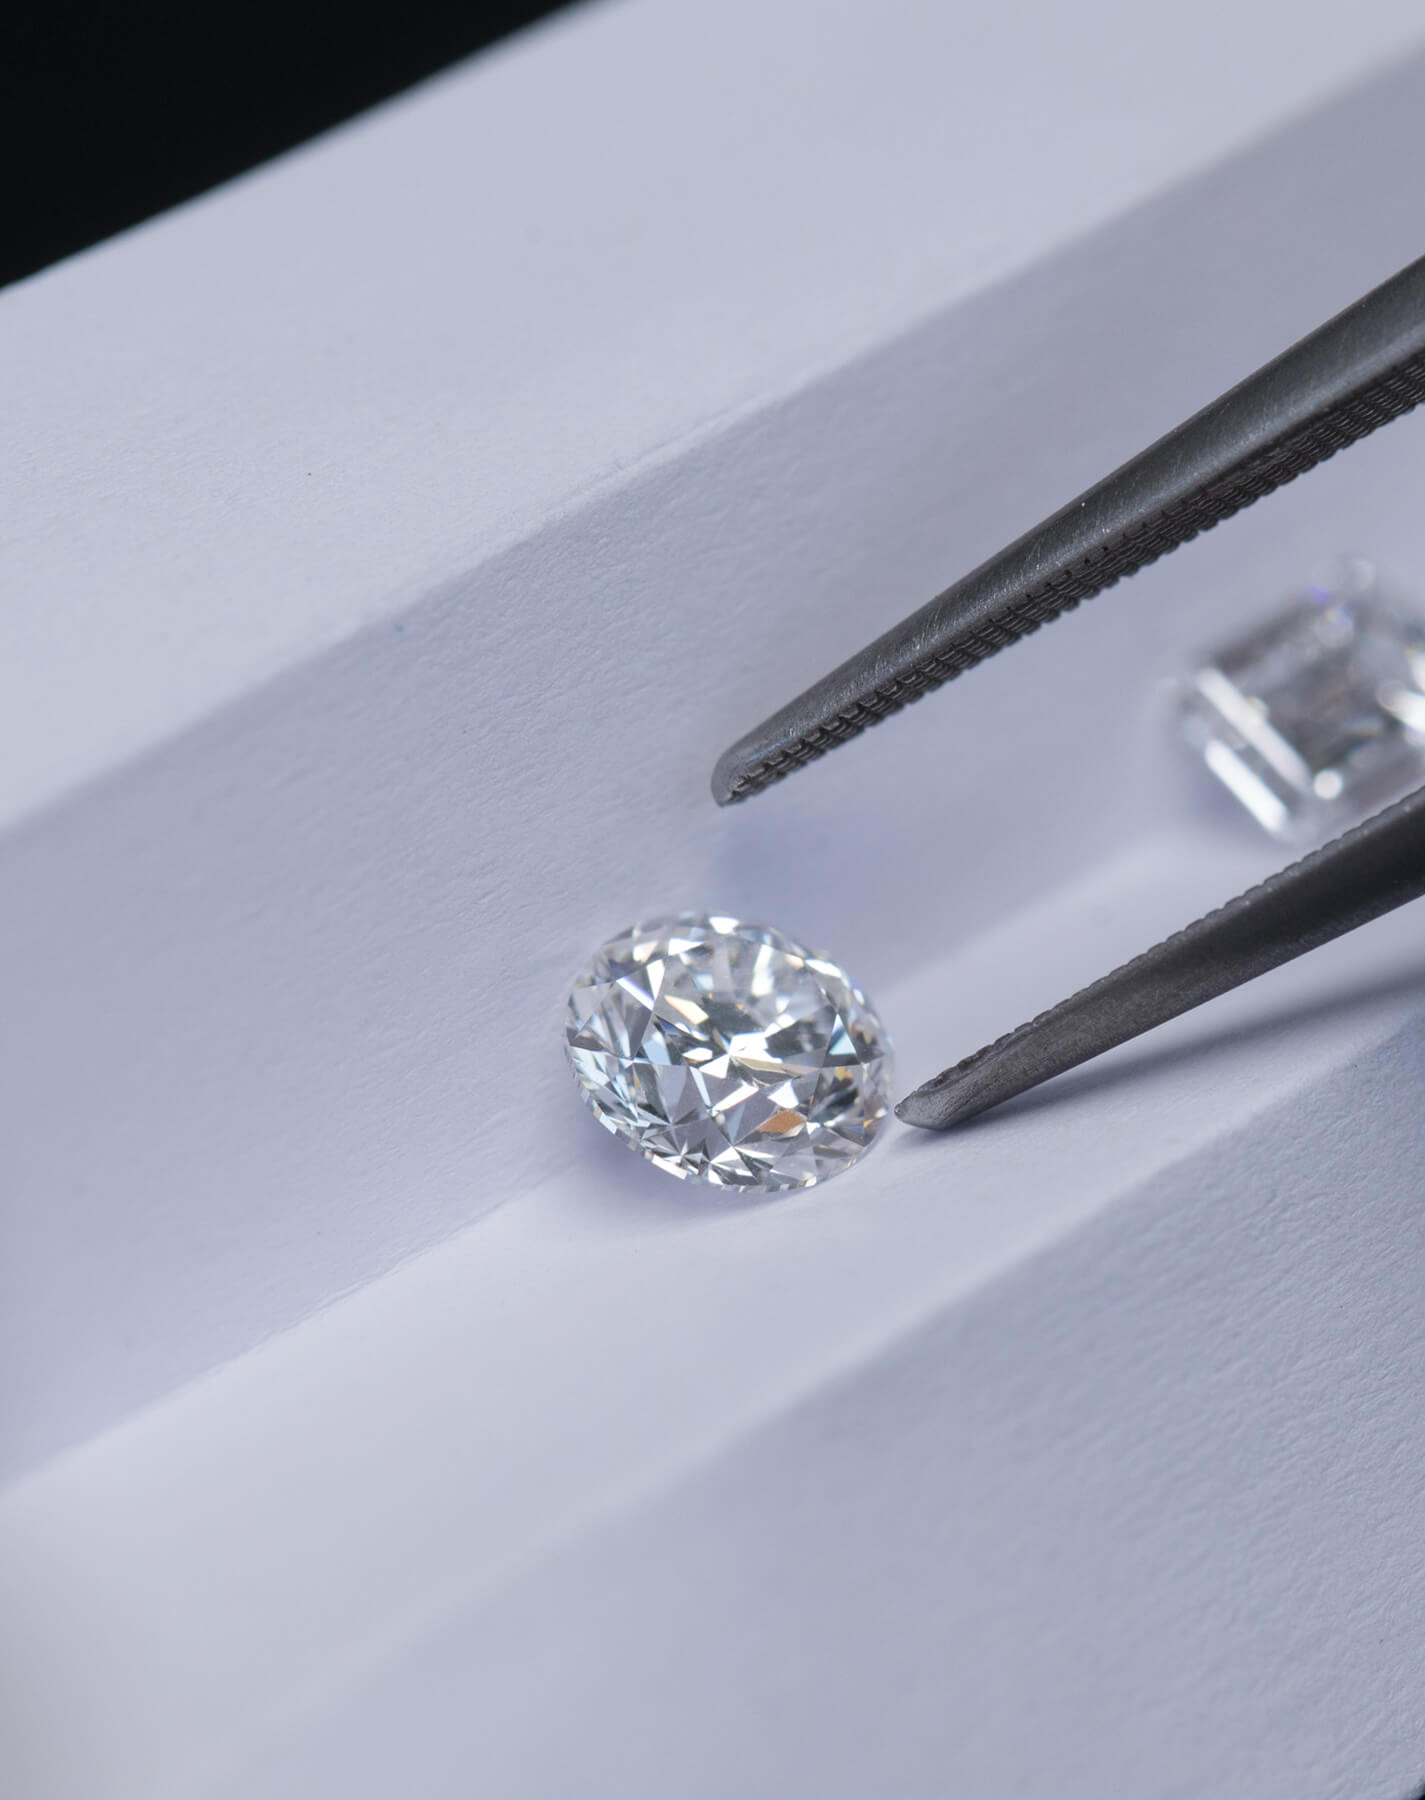 Close-up view of diamonds on a white paper being sorted with a pair of tweezers